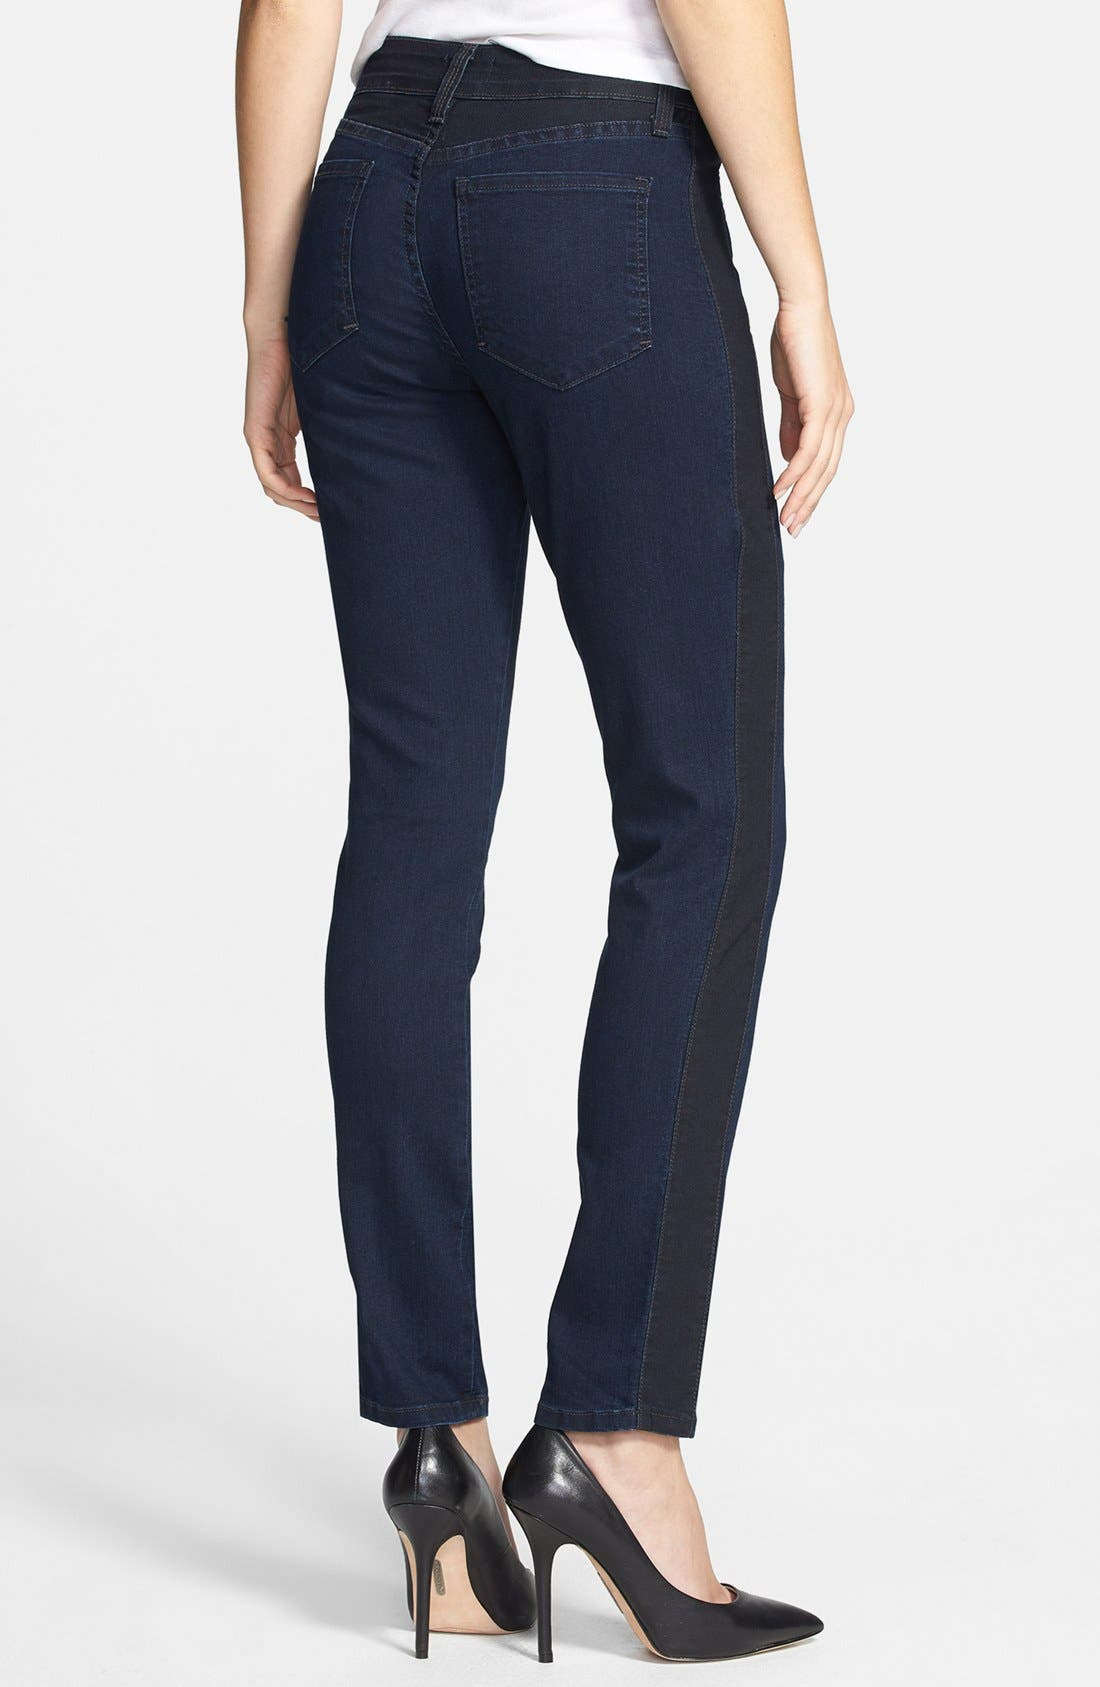 Alternate Image 2  - NYDJ 'Alexandra' Tuxedo Stripe Stretch Skinny Jeans (Covina)